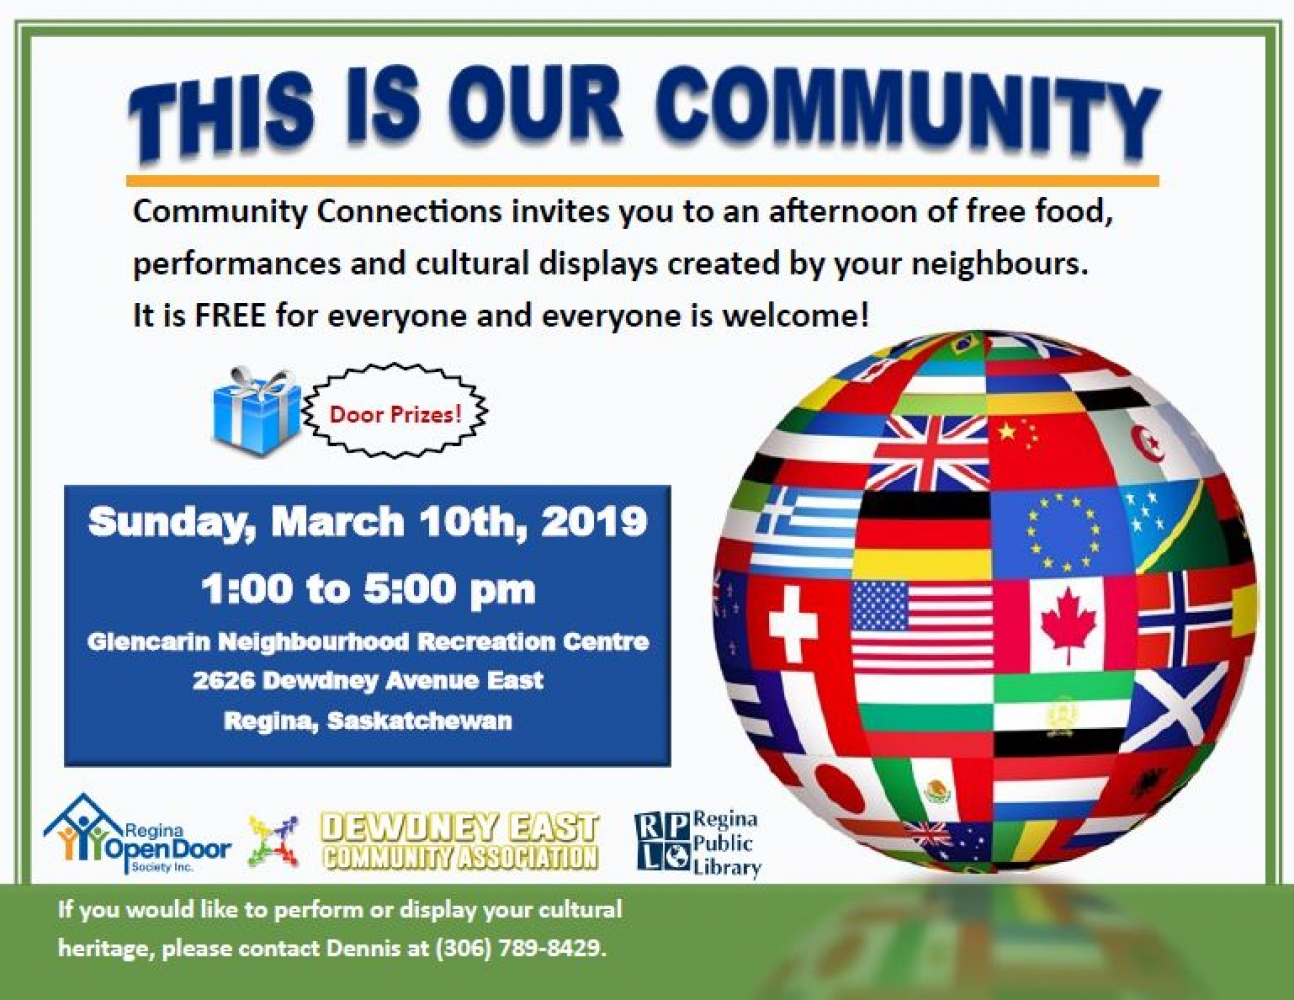 Family Friendly Cultural Event - this Sunday!